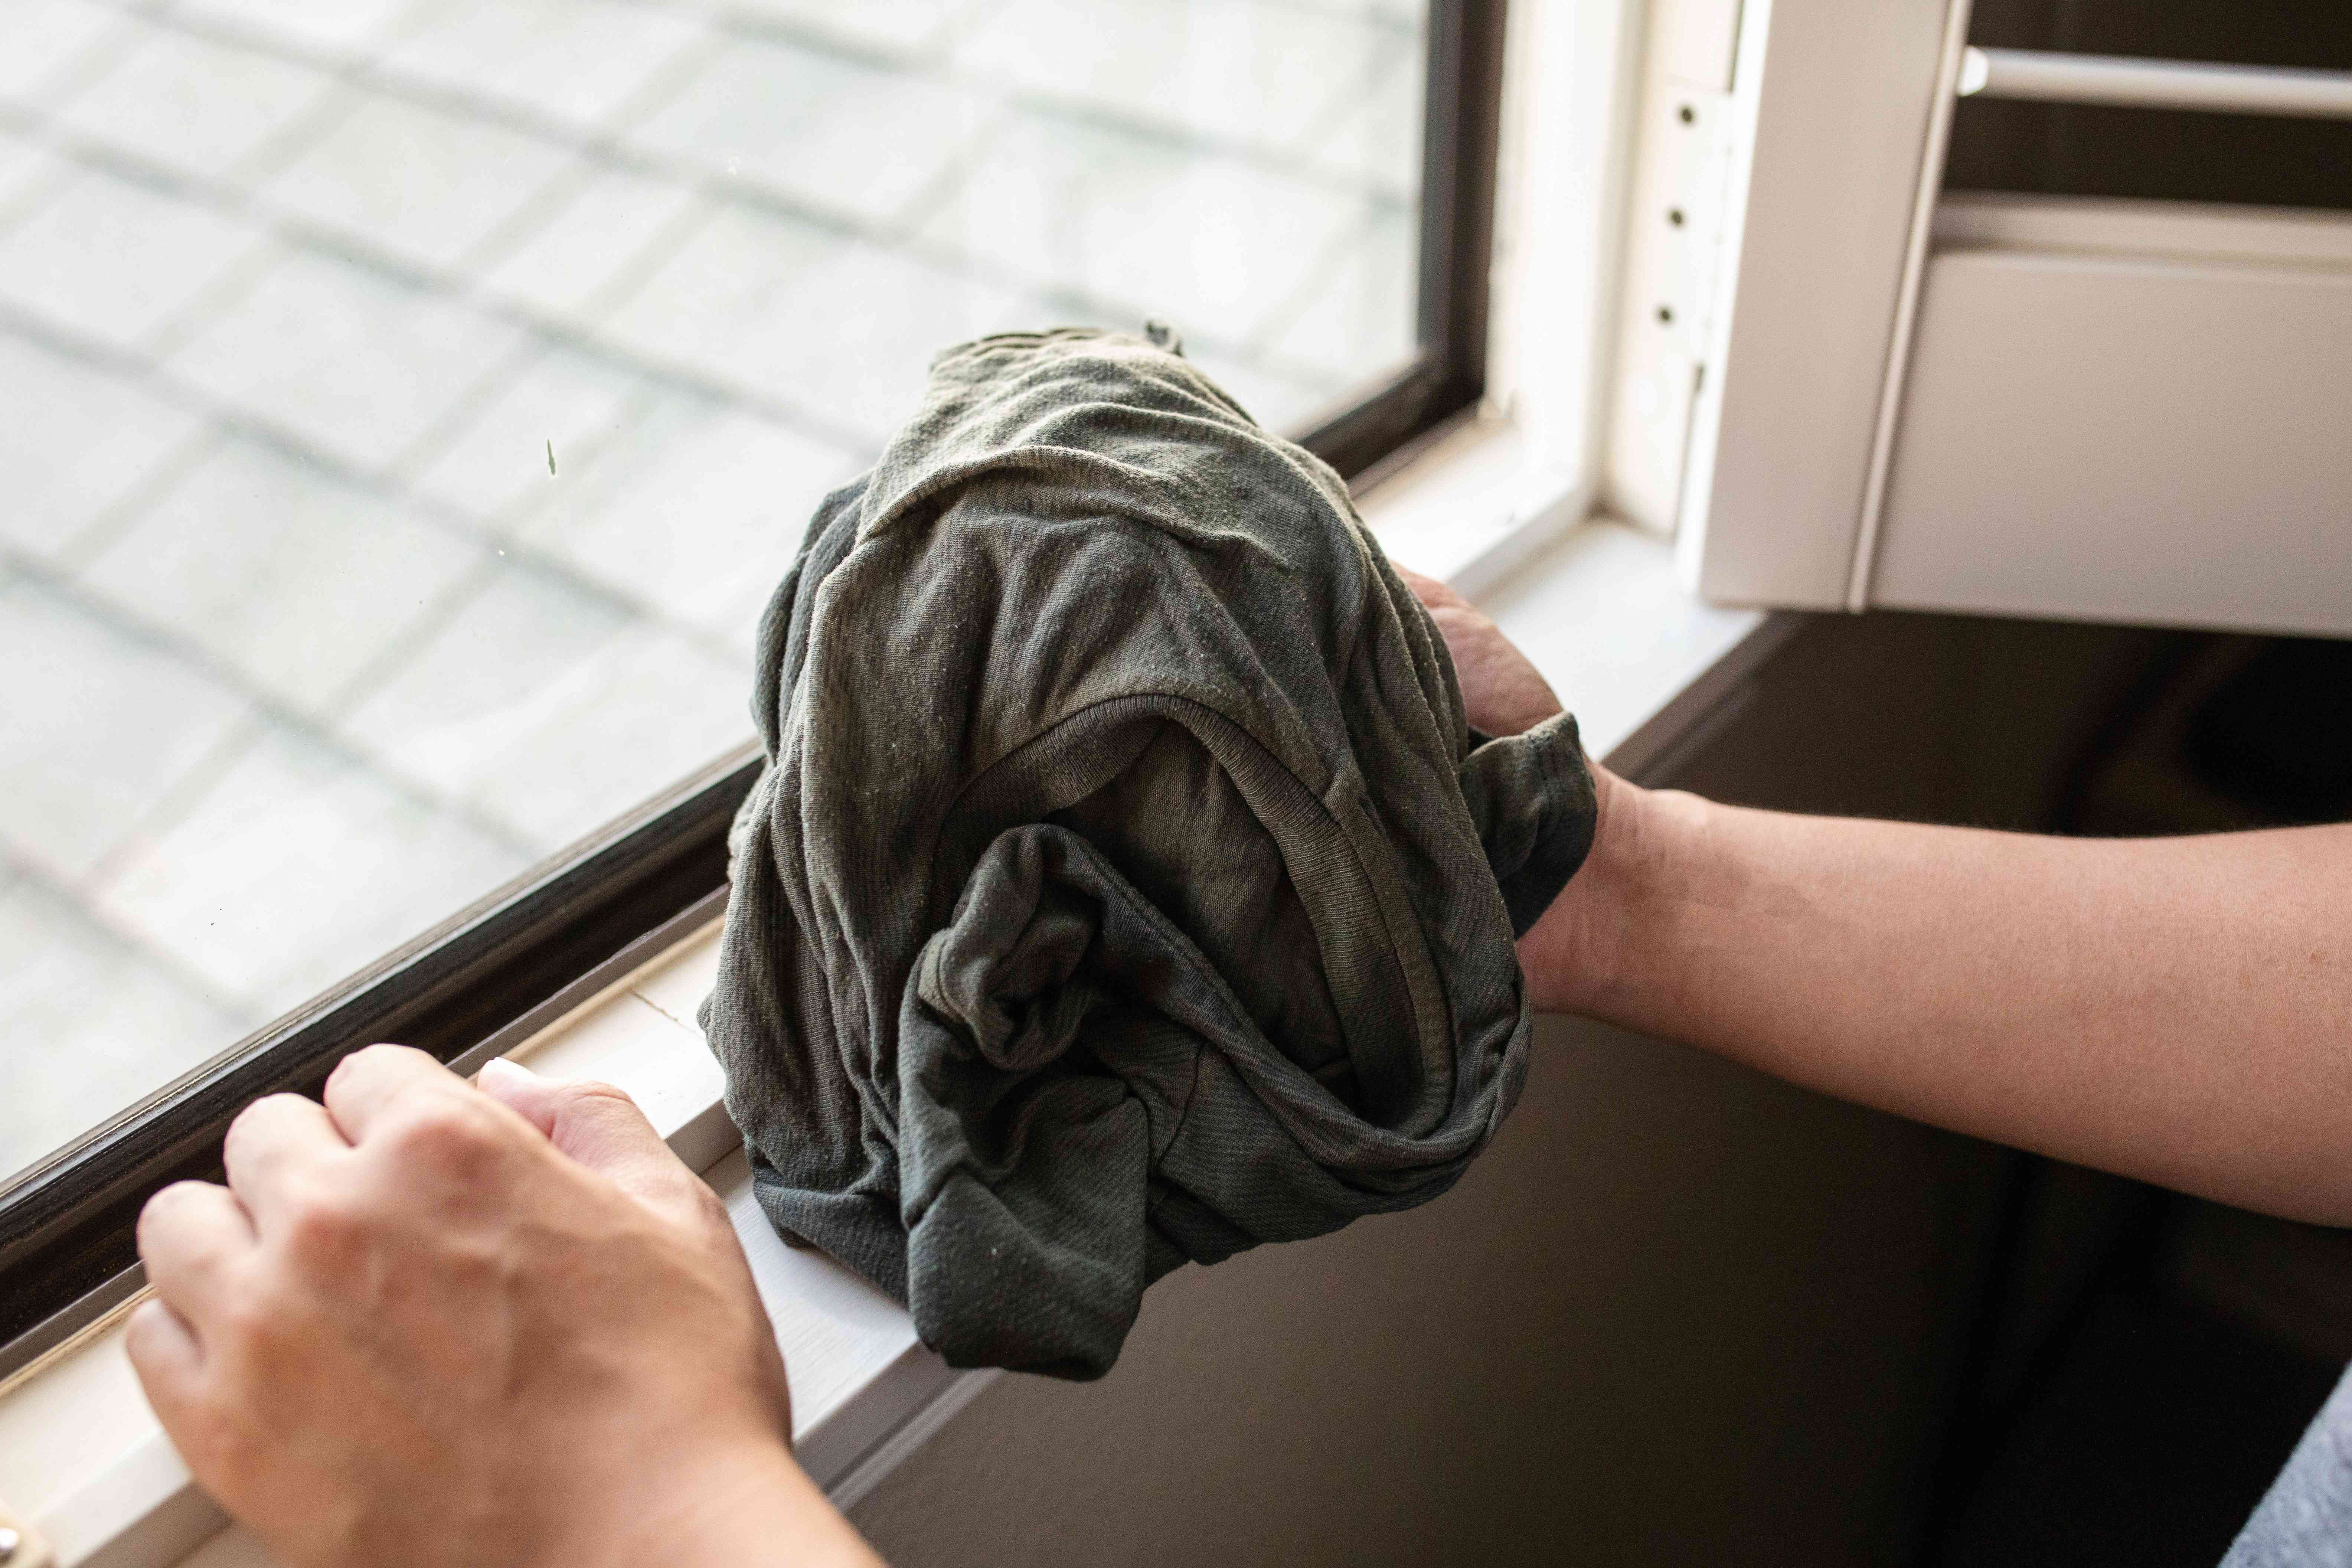 try using an old tshirt for window washing